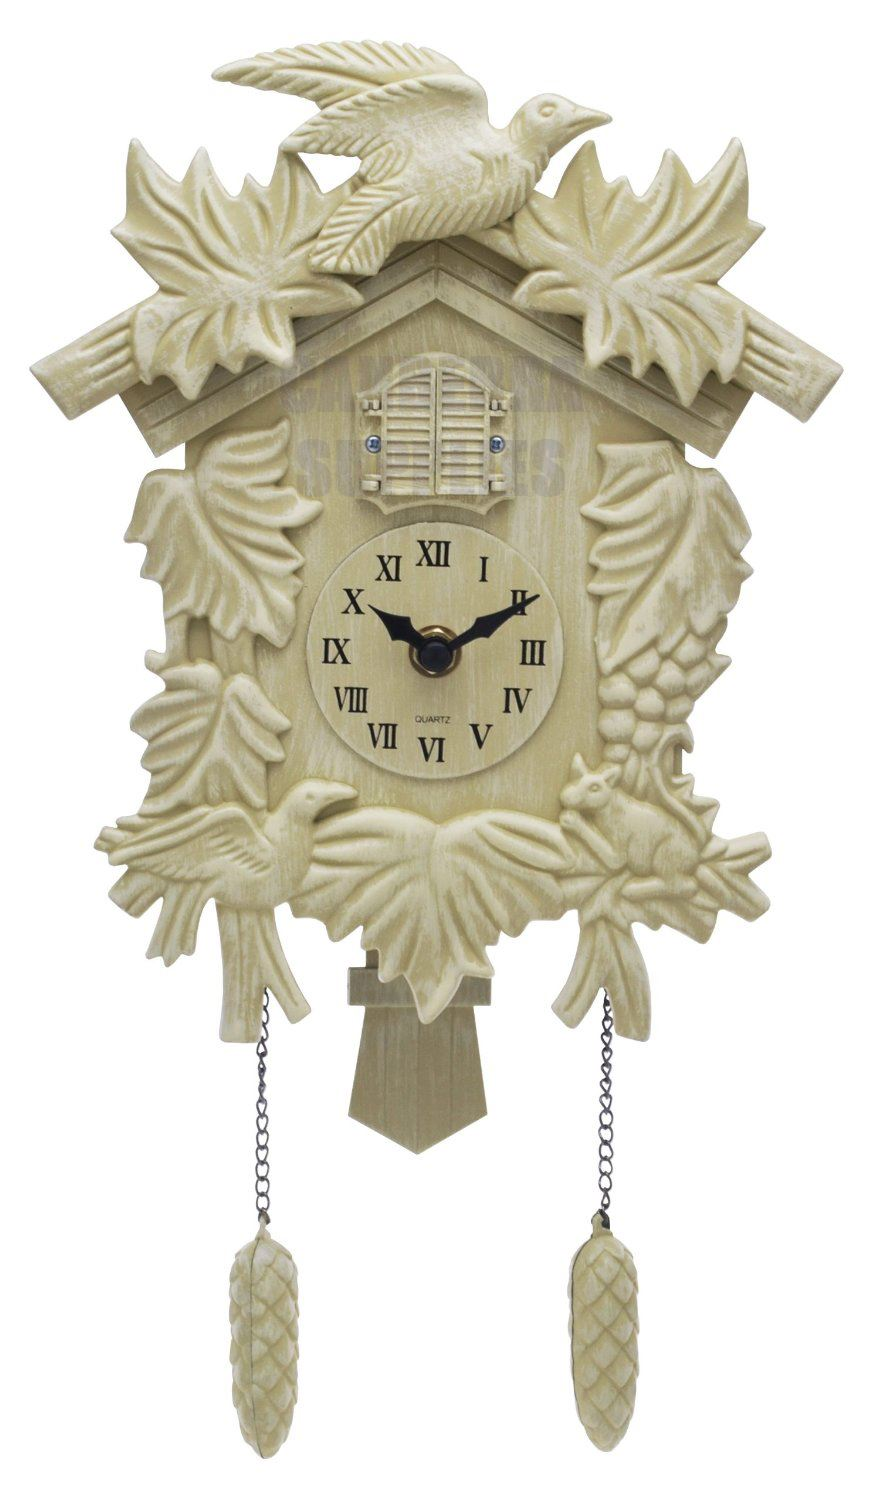 Acctim feldburg traditional style cuckoo pendulum wall clock antique cream ebay - Cuckoo pendulum wall clock ...